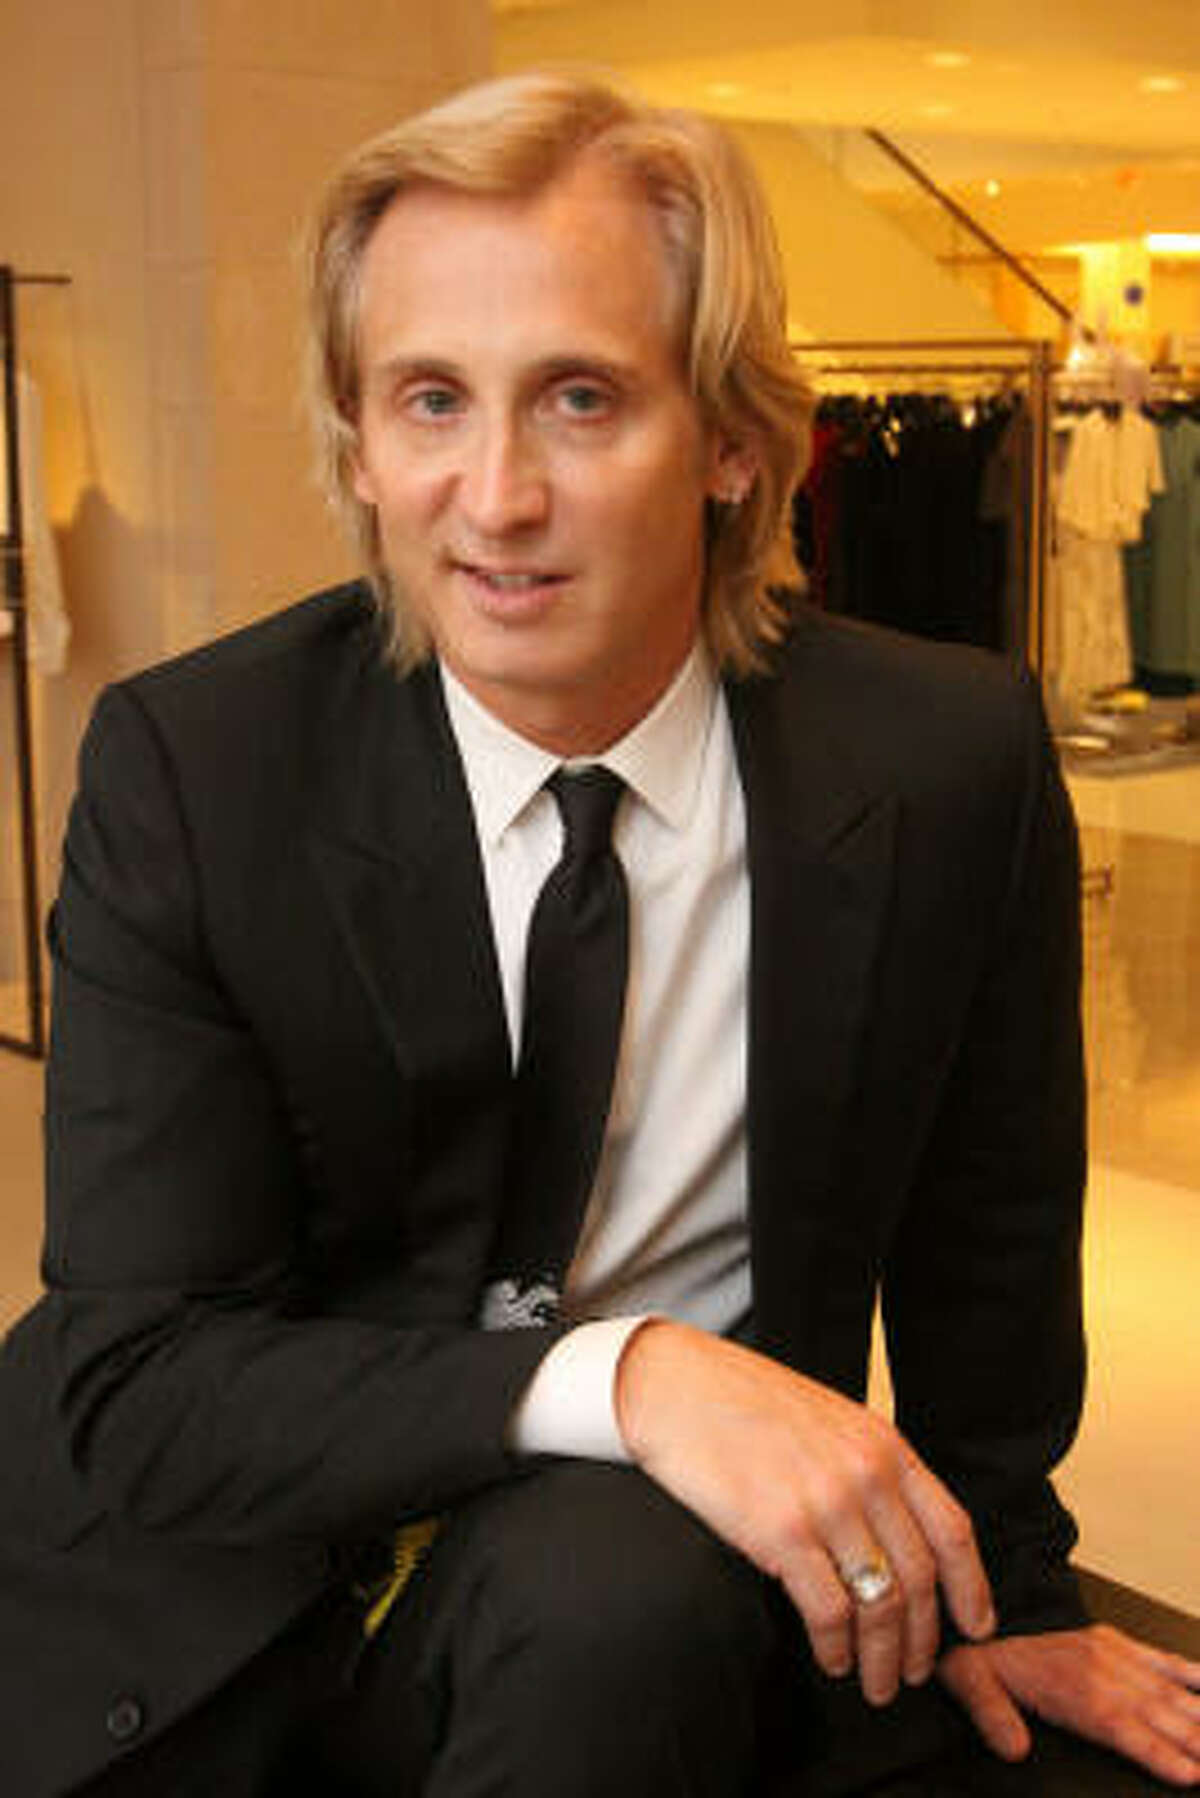 Fashion designer David Meister came to Neiman Marcus for a fashion show and cocktail party.